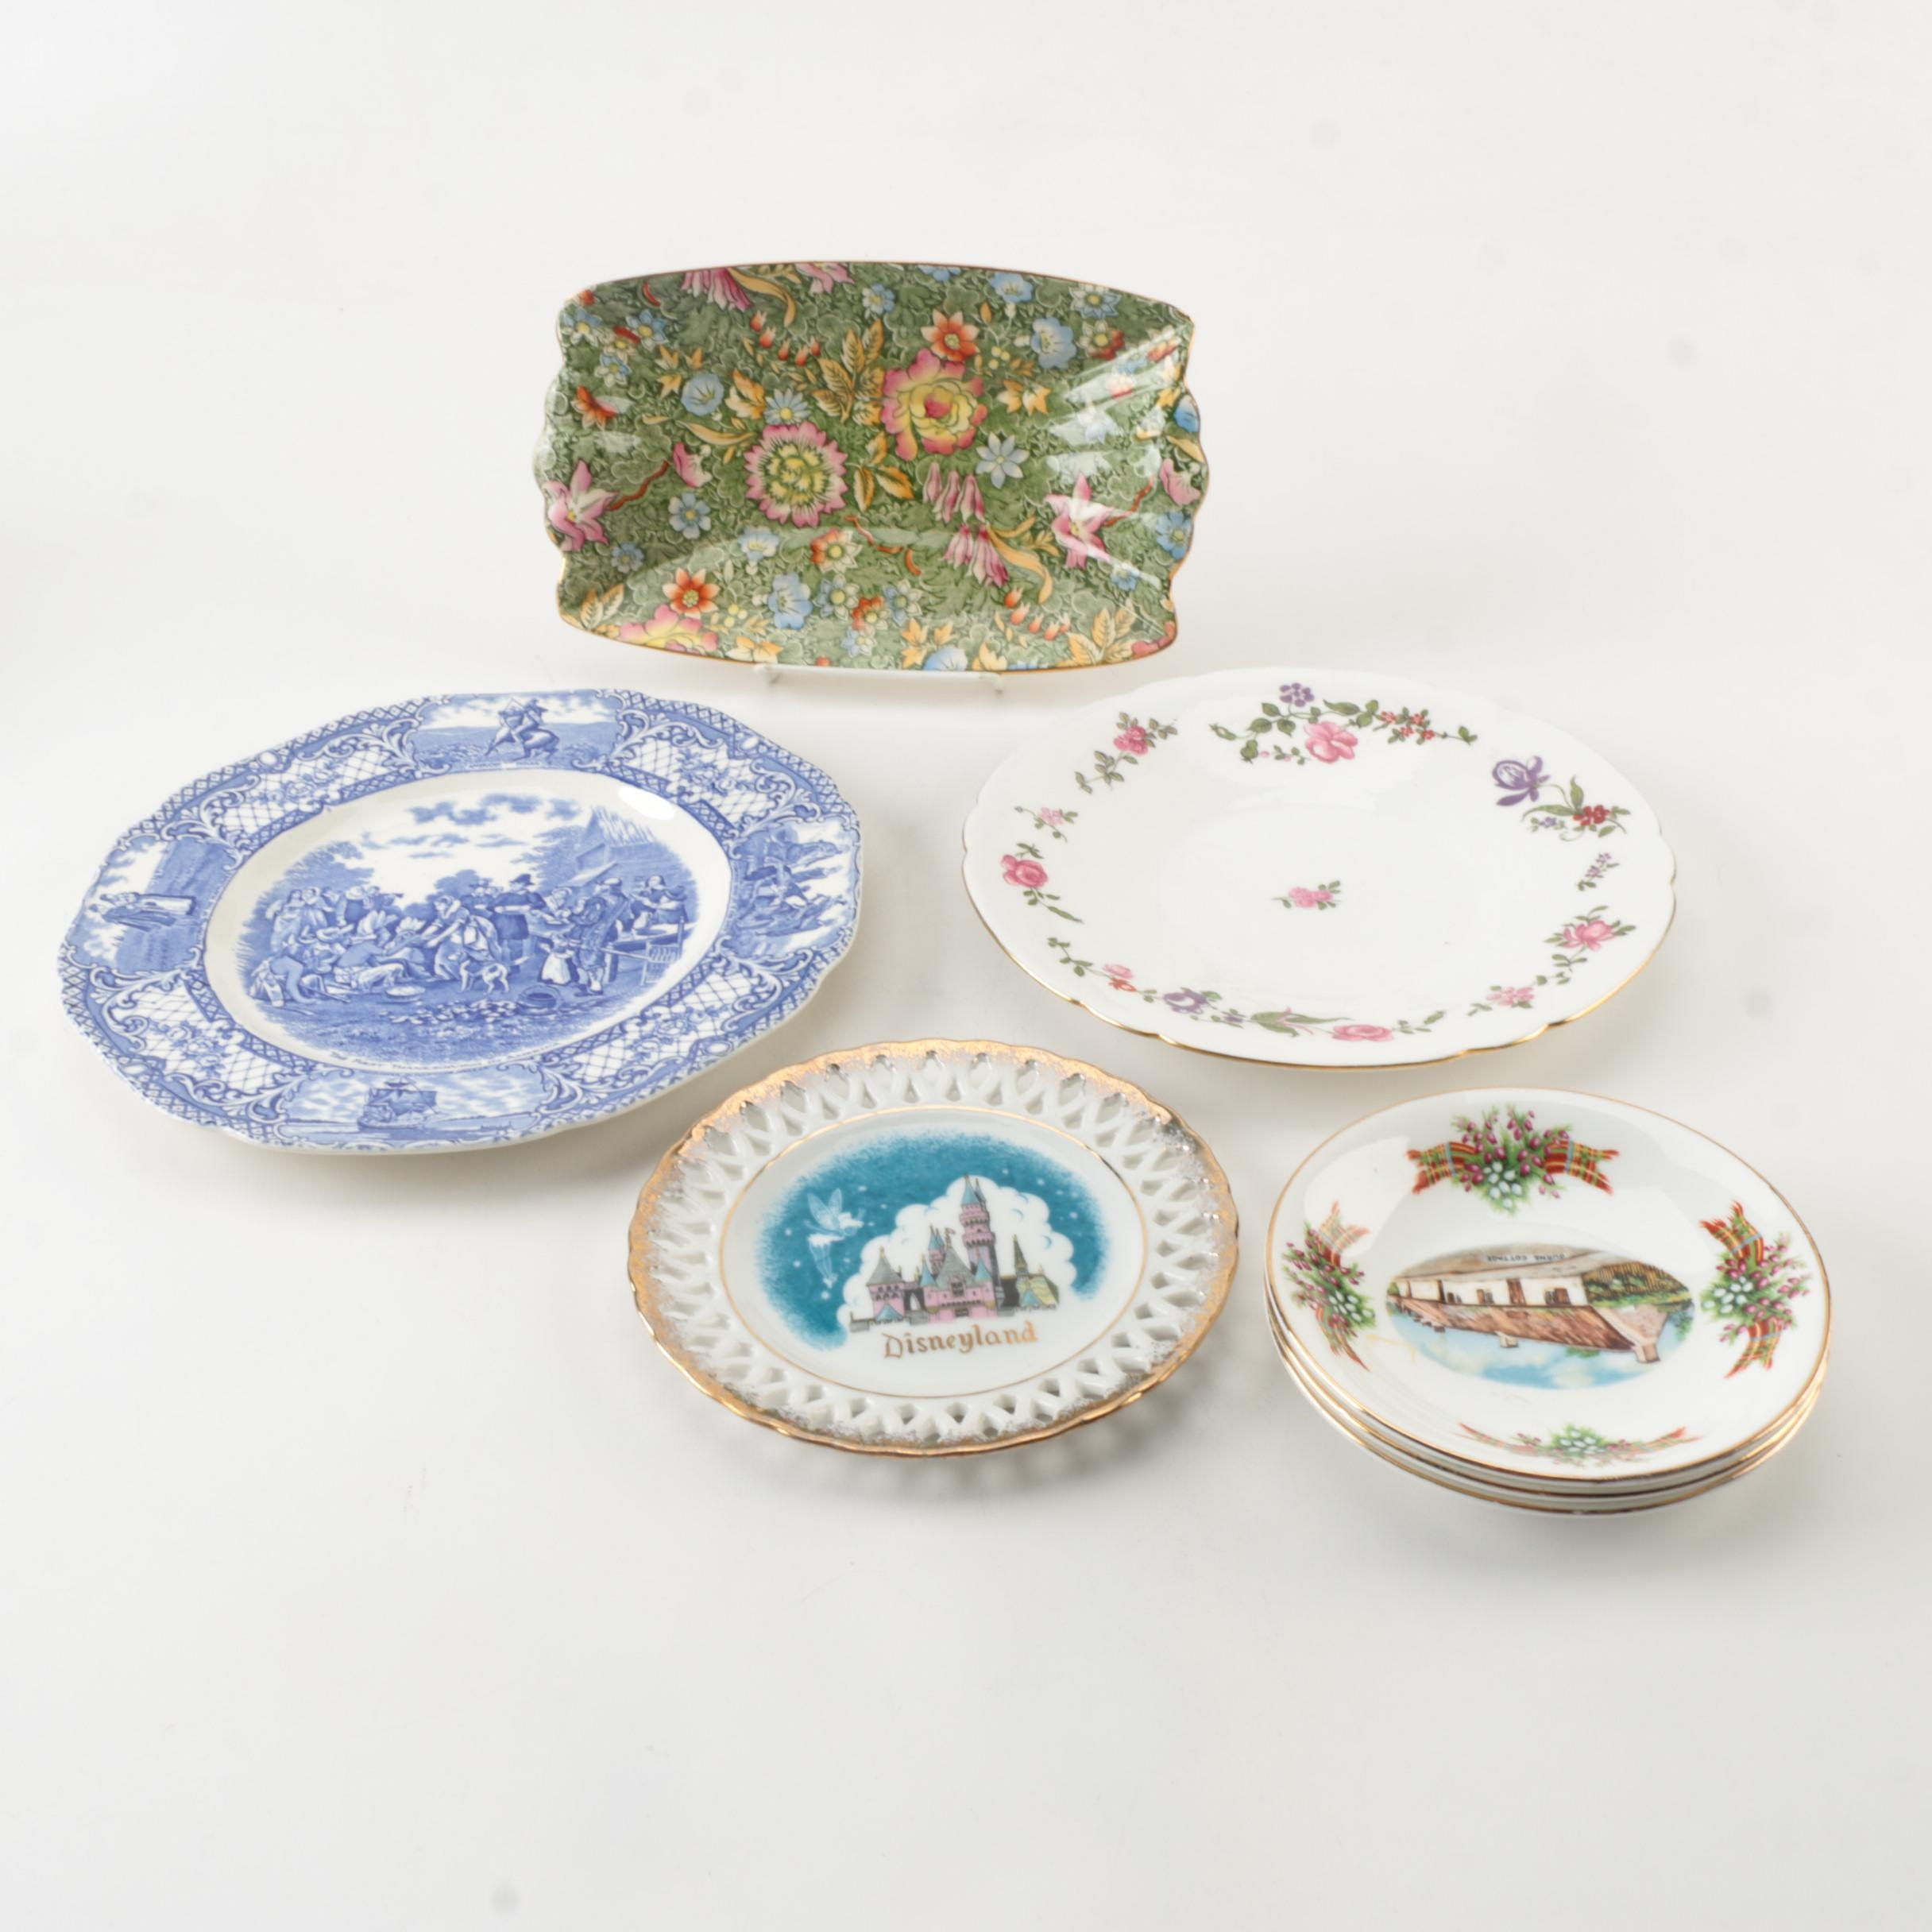 Vintage Porcelain Plates and Tray Including Royal Winton